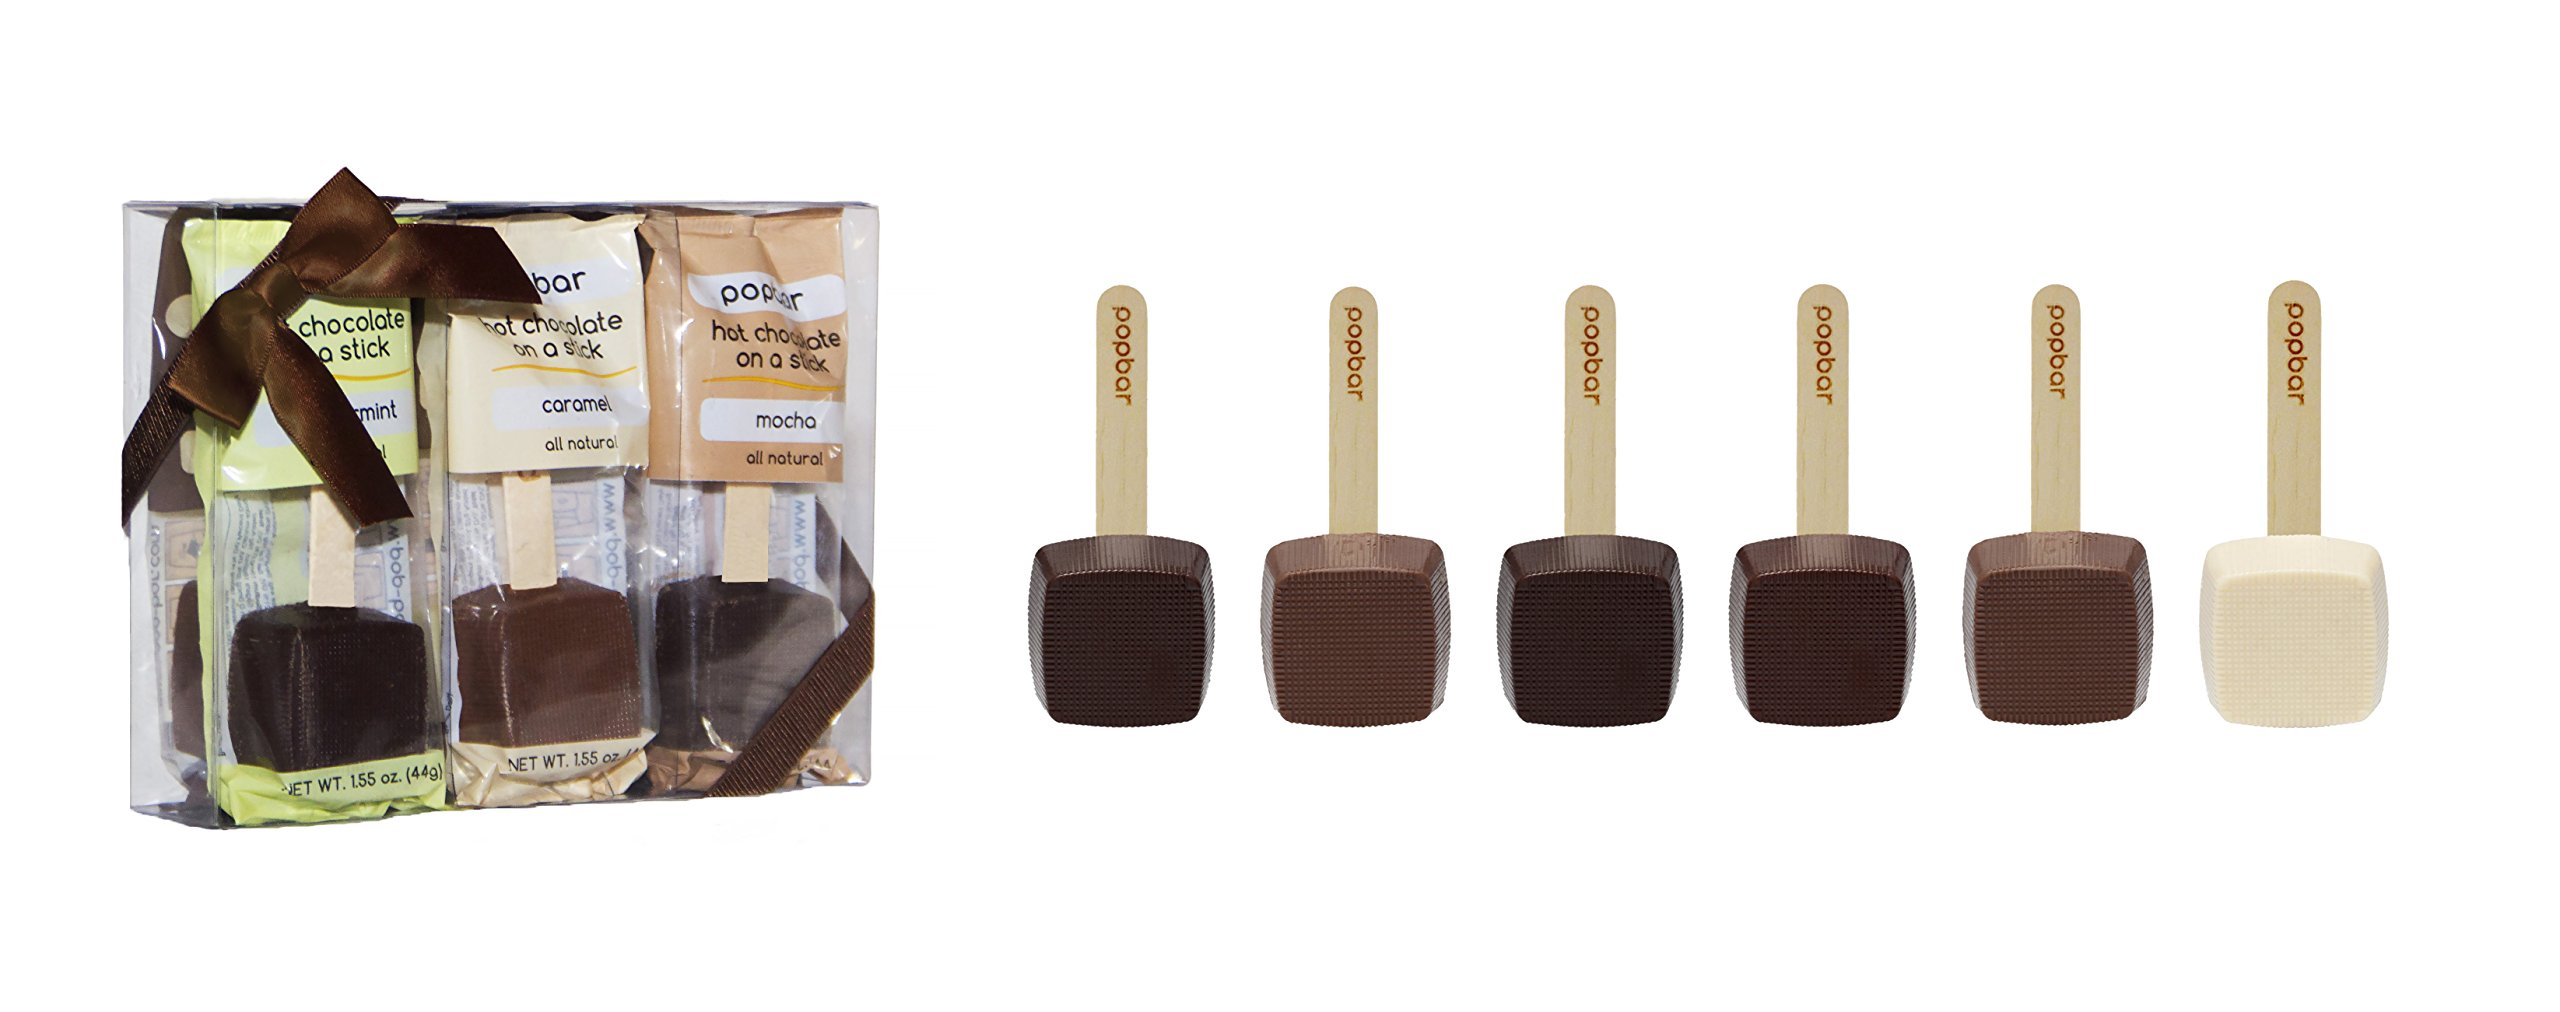 Hot Chocolate on a Stick - 6 Pack Holiday Gift Box - Dark, Milk, Vanilla White, Caramel, Mocha and Peppermint by Popbar